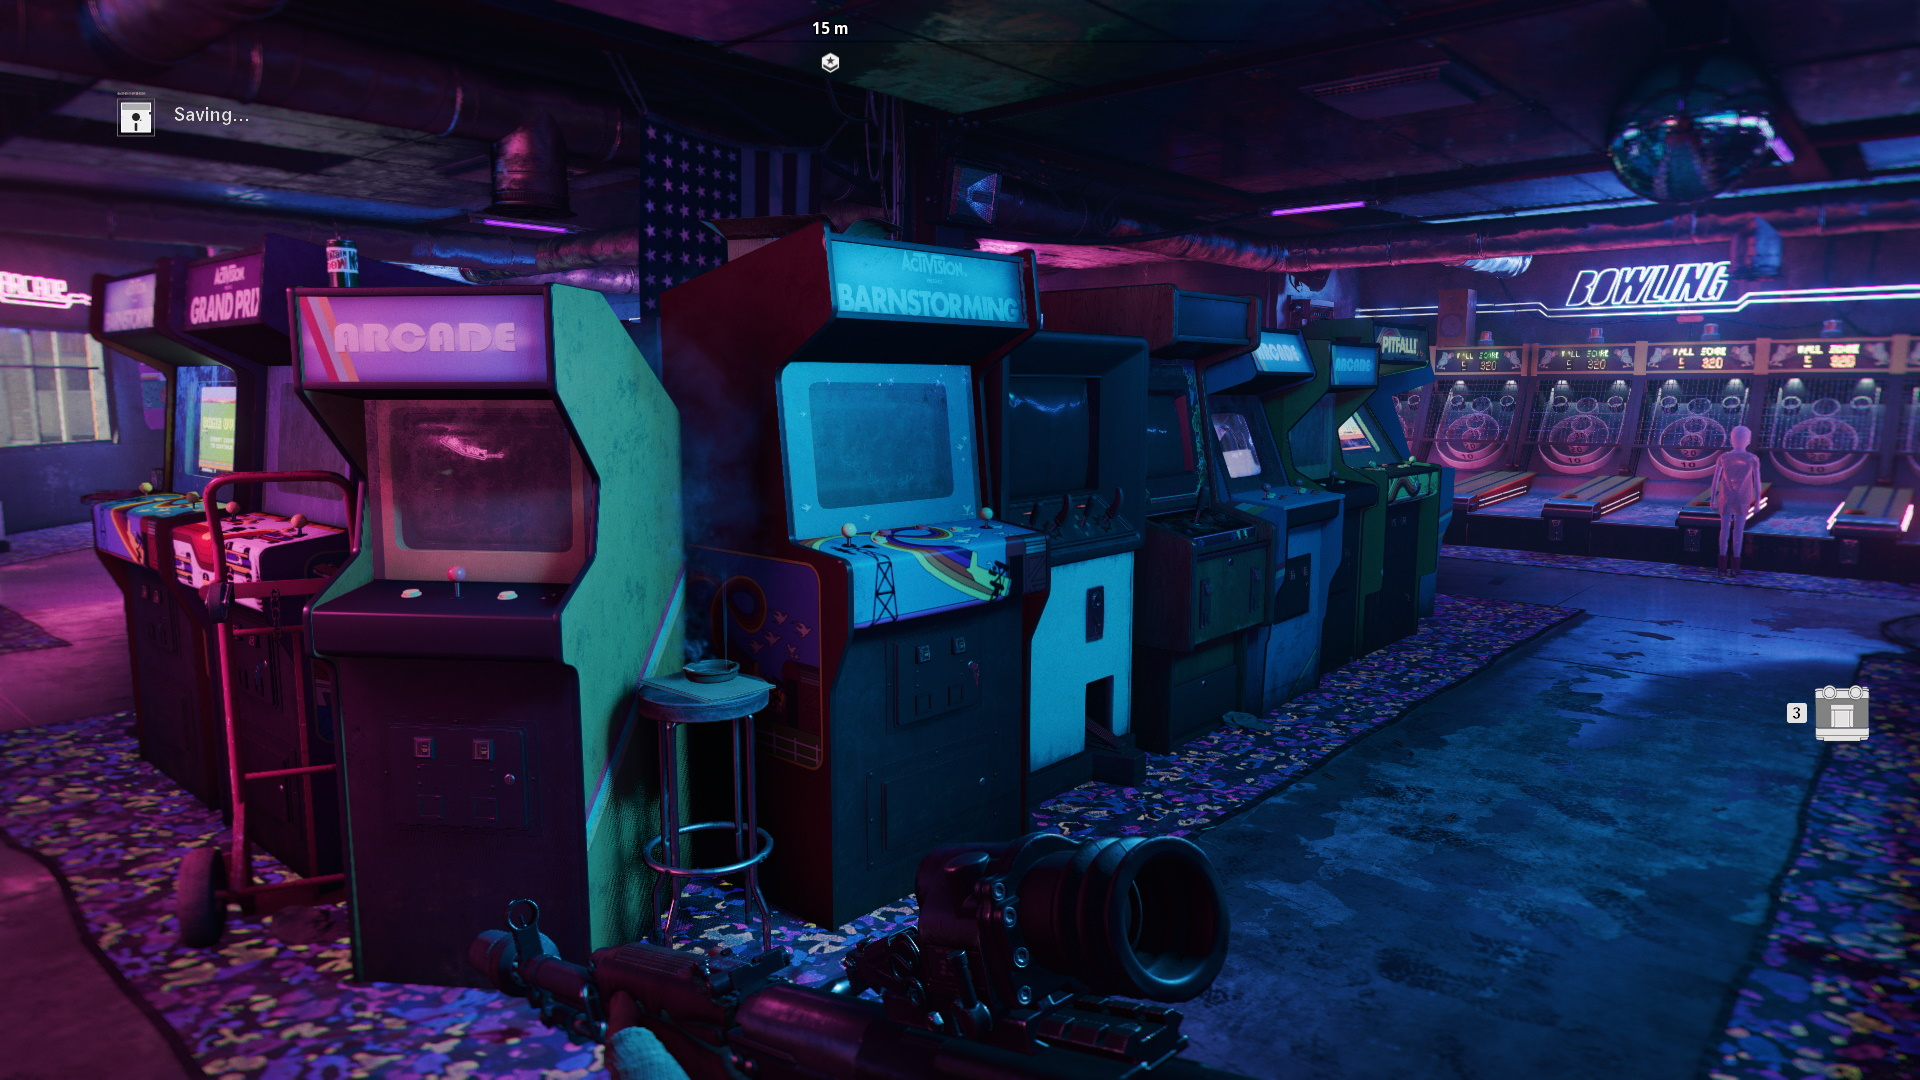 Arcade machines in Call of Duty - you'll need to pass this bit to get to Operation Chaos evidence.